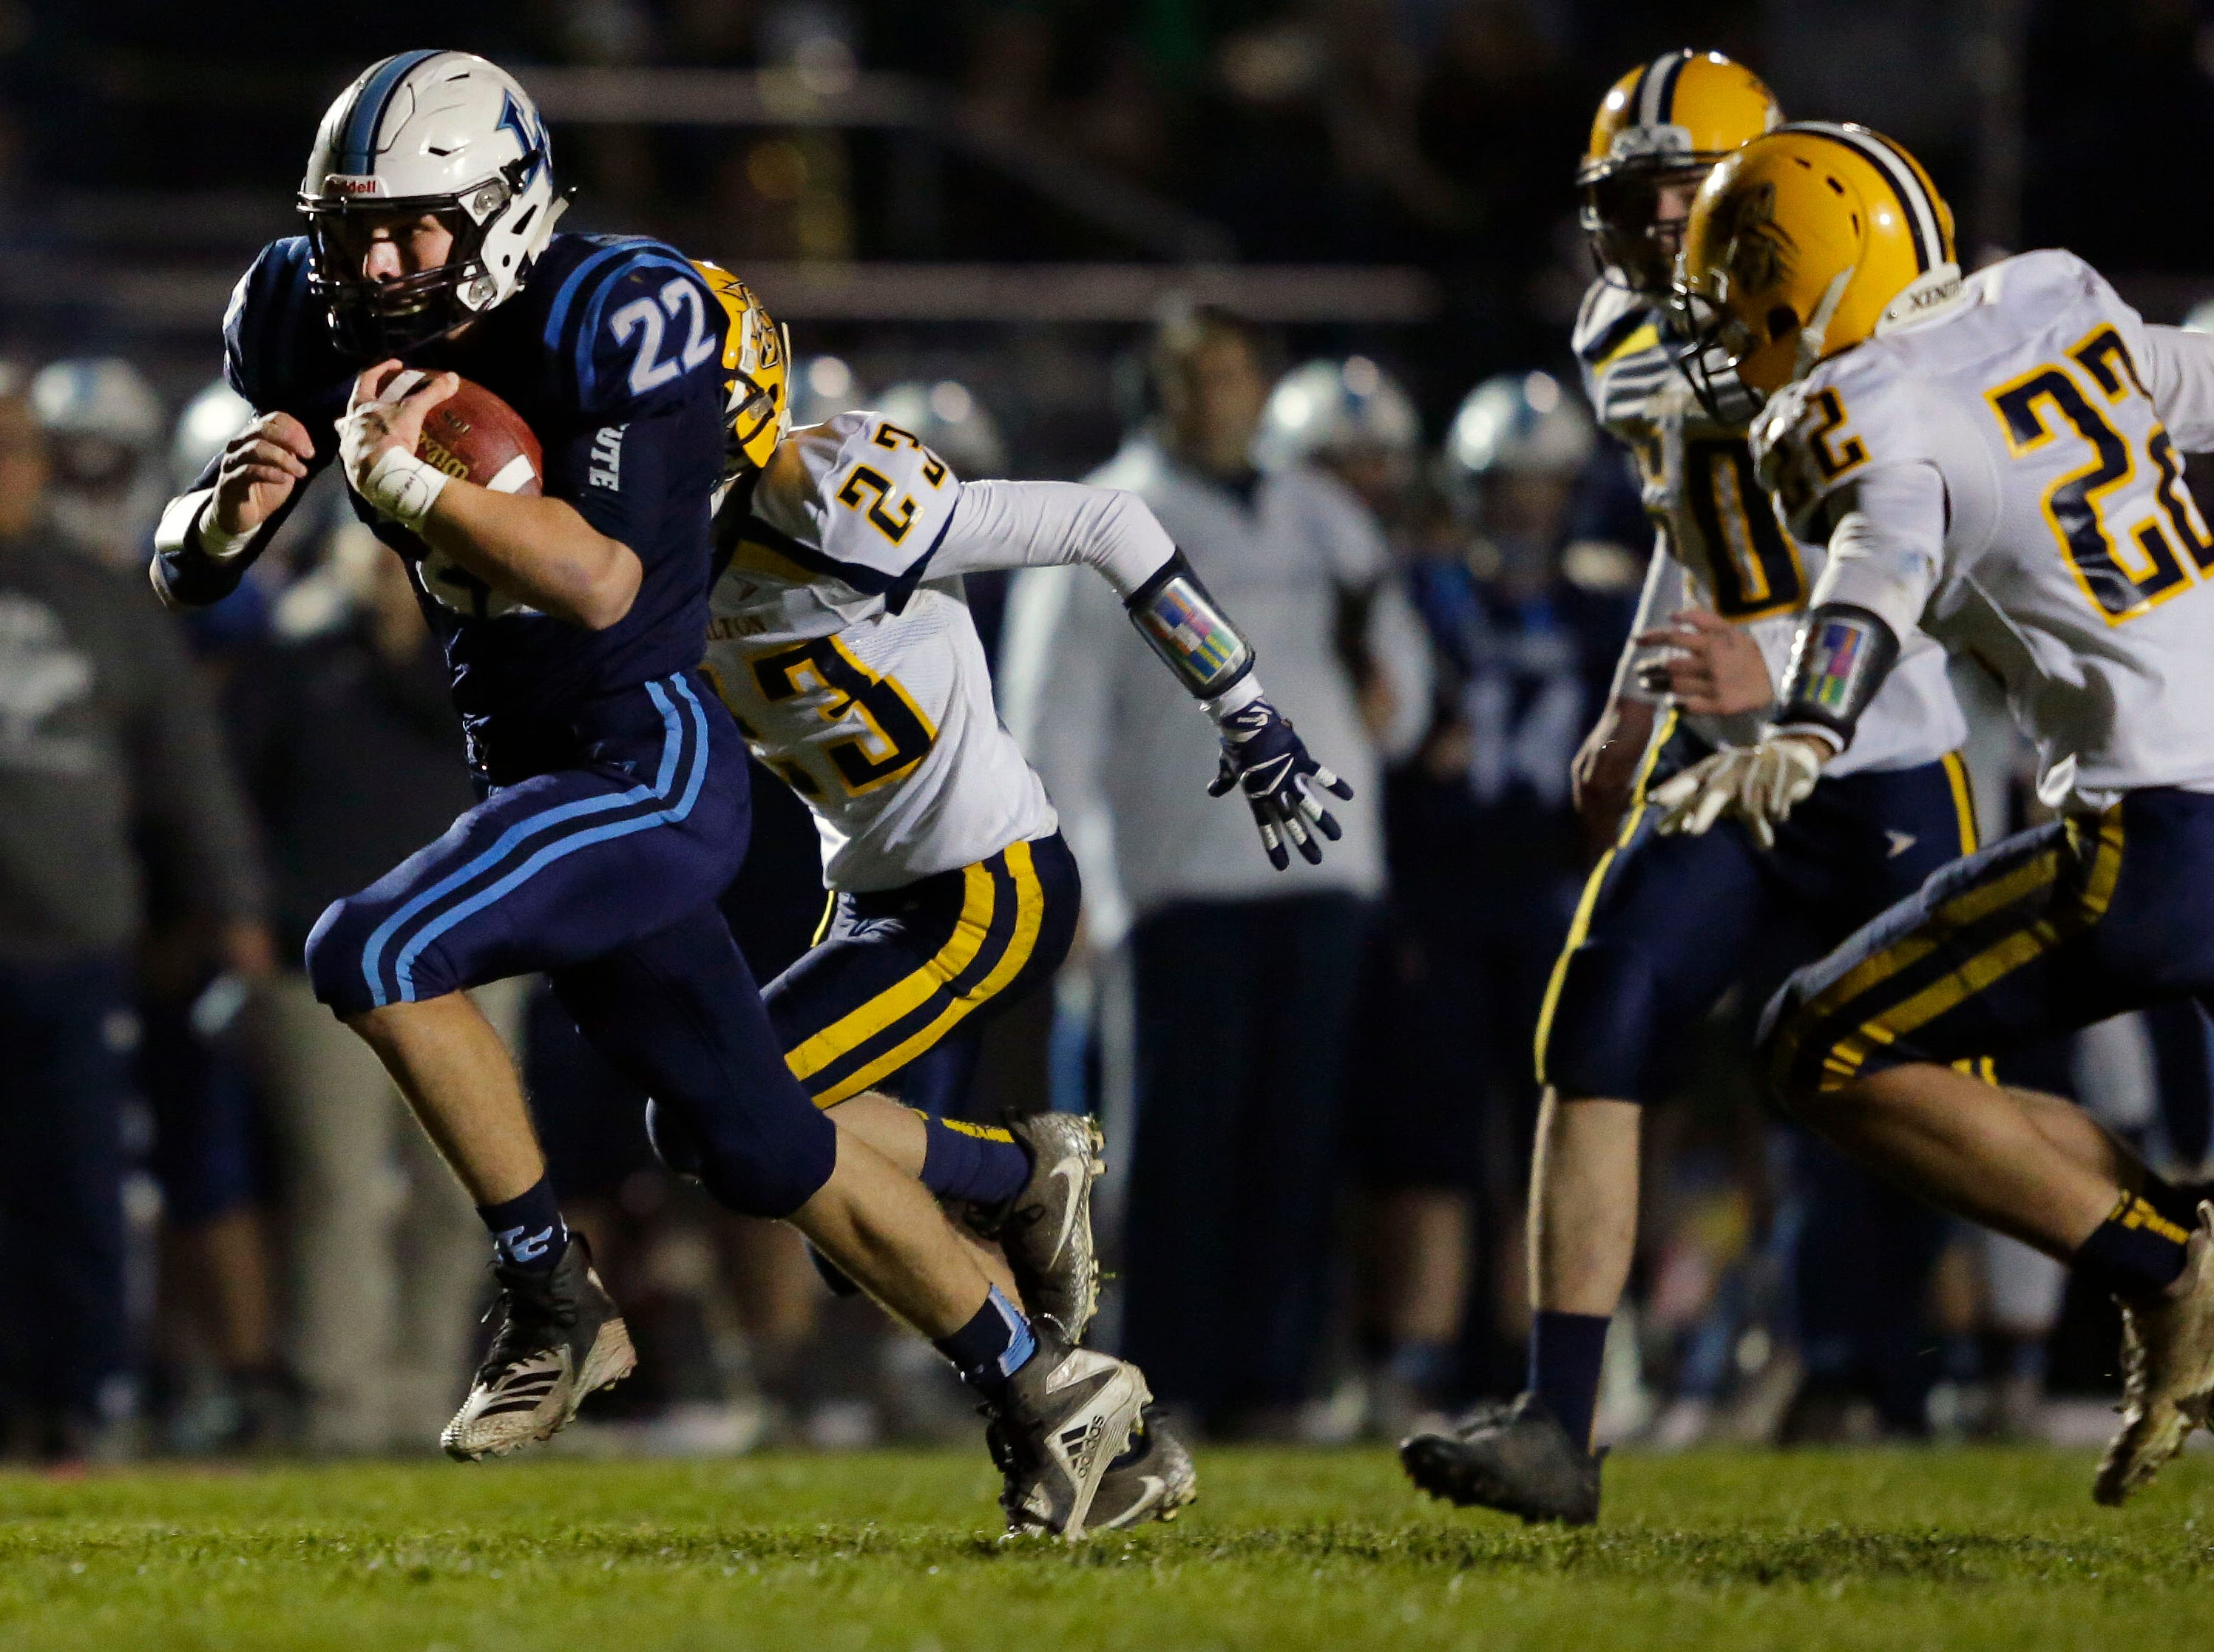 Bryce Schumacher of Little Chute breaks away from the defense for a touchdown against Chilton in a WIAA Division 4 second round football playoff game Friday, October 26, 2018, at Little Chute High School in Little Chute, Wis.Ron Page/USA TODAY NETWORK-Wisconsin